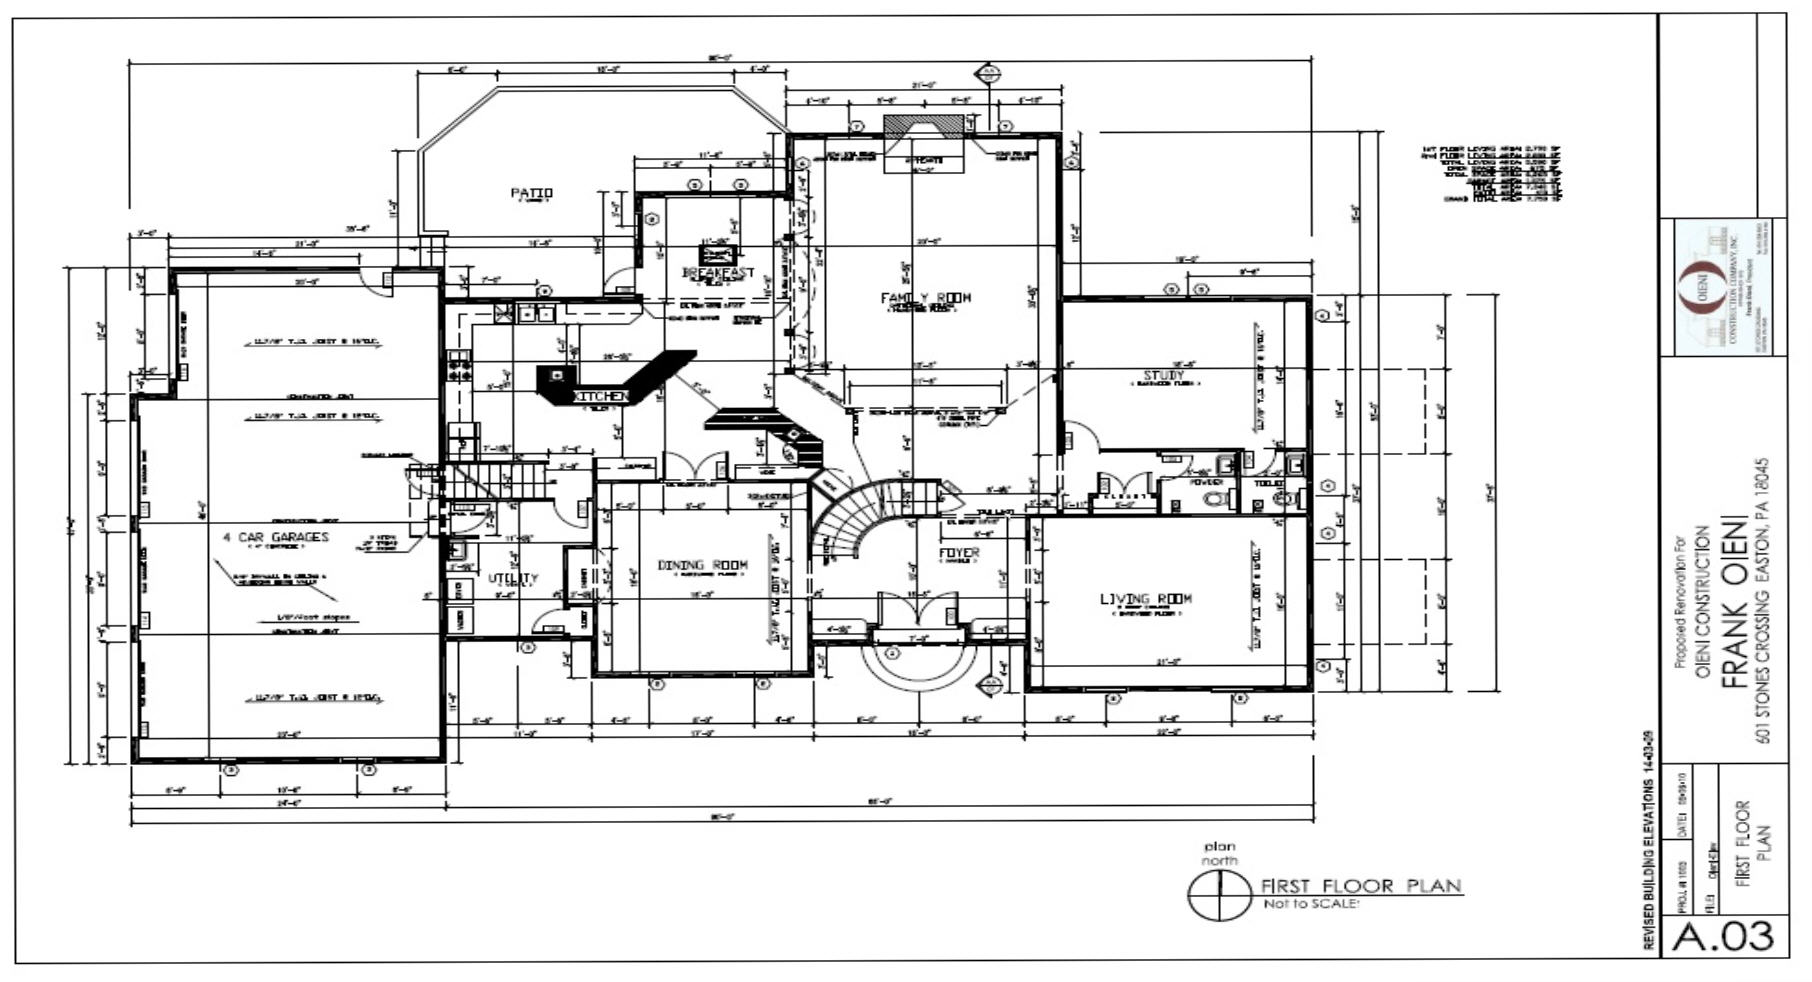 Oieni construction brodhead floor plans for New building design plan